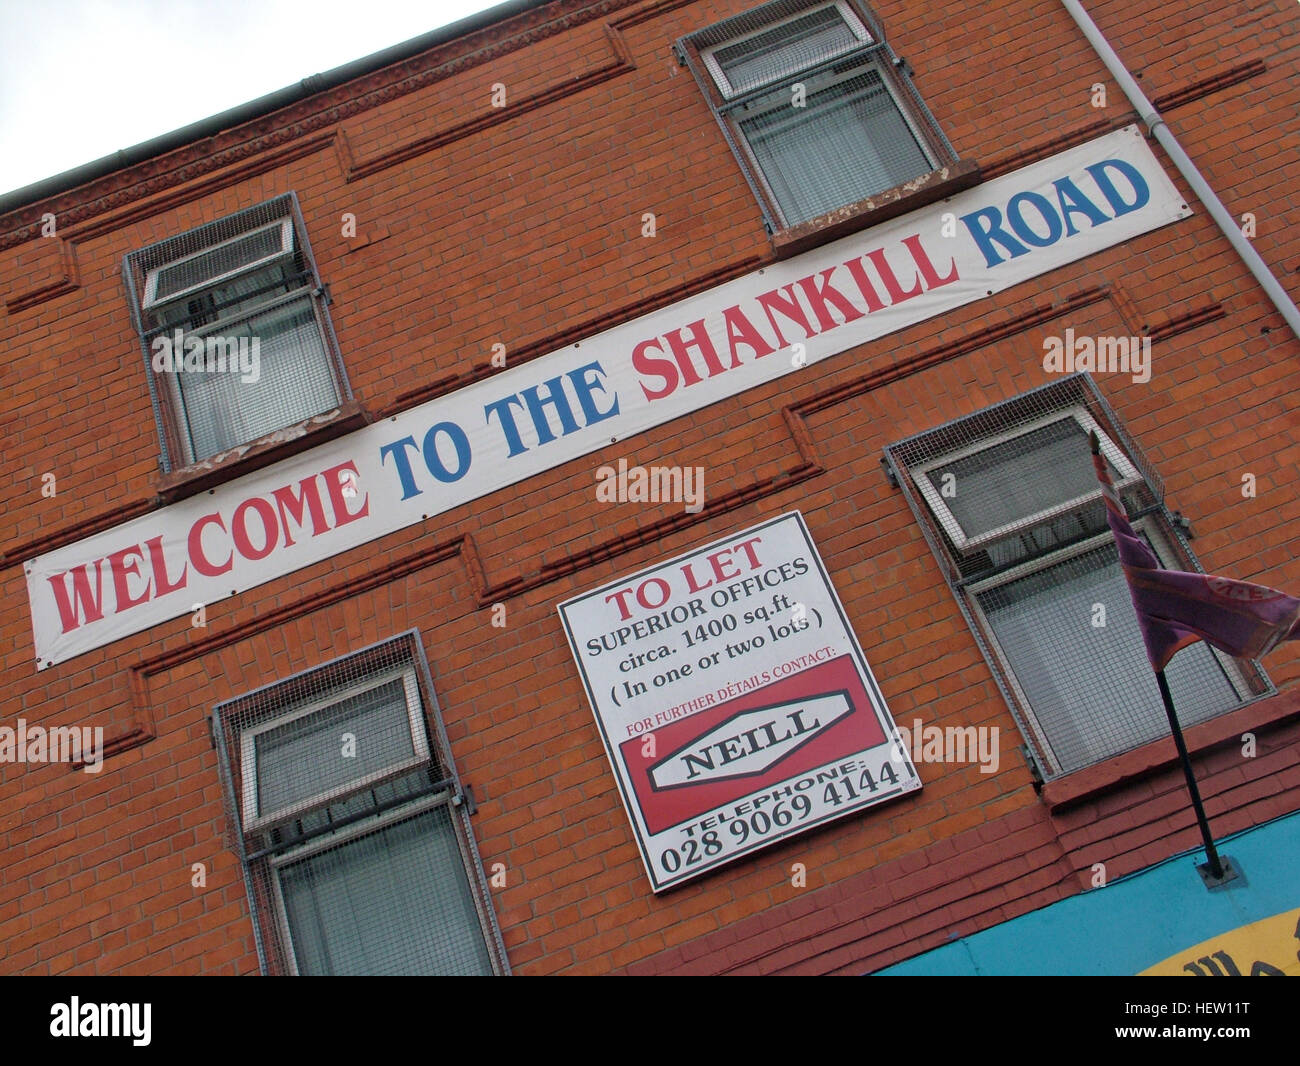 Unionist,British,Shankil,rd,painting,art,artist,martyr,fighter,para,paramilitary,soldier,wall,gable,end,gable end,community,protestant,Shankill Road Mural,West,West Belfast,NI,Northern Ireland,Welcome To The Shankill Rd,Welcome,To,The,Shankill Road,flag,poster,sign,GoTonySmith,@HotpixUK,Tony,Smith,UK,GB,Great,Britain,United,Kingdom,Irish,British,Ireland,problem,with,problem with,issue with,NI,Northern,Northern Ireland,Belfast,City,Centre,Art,Artists,the,troubles,The Troubles,Good Friday Agreement,Peace,honour,painting,wall,walls,tribute,unionism,Fight,Justice,West,Beal,feirste,martyrs,social,tour,tourism,tourists,urban,six,counties,6,backdrop,county,Antrim,DUP,democratic Unionist,red hand,of Ulster,Red Hand Of Ulster,Shankill,Rd,road,Shankill Road,streets of Belfast,protestant,religion,intolerance,prejudice,Buy Pictures of,Buy Images Of,Images of,Stock Images,Tony Smith,United Kingdom,Great Britain,British Isles,Irish History,Ireland History,Northern Ireland History